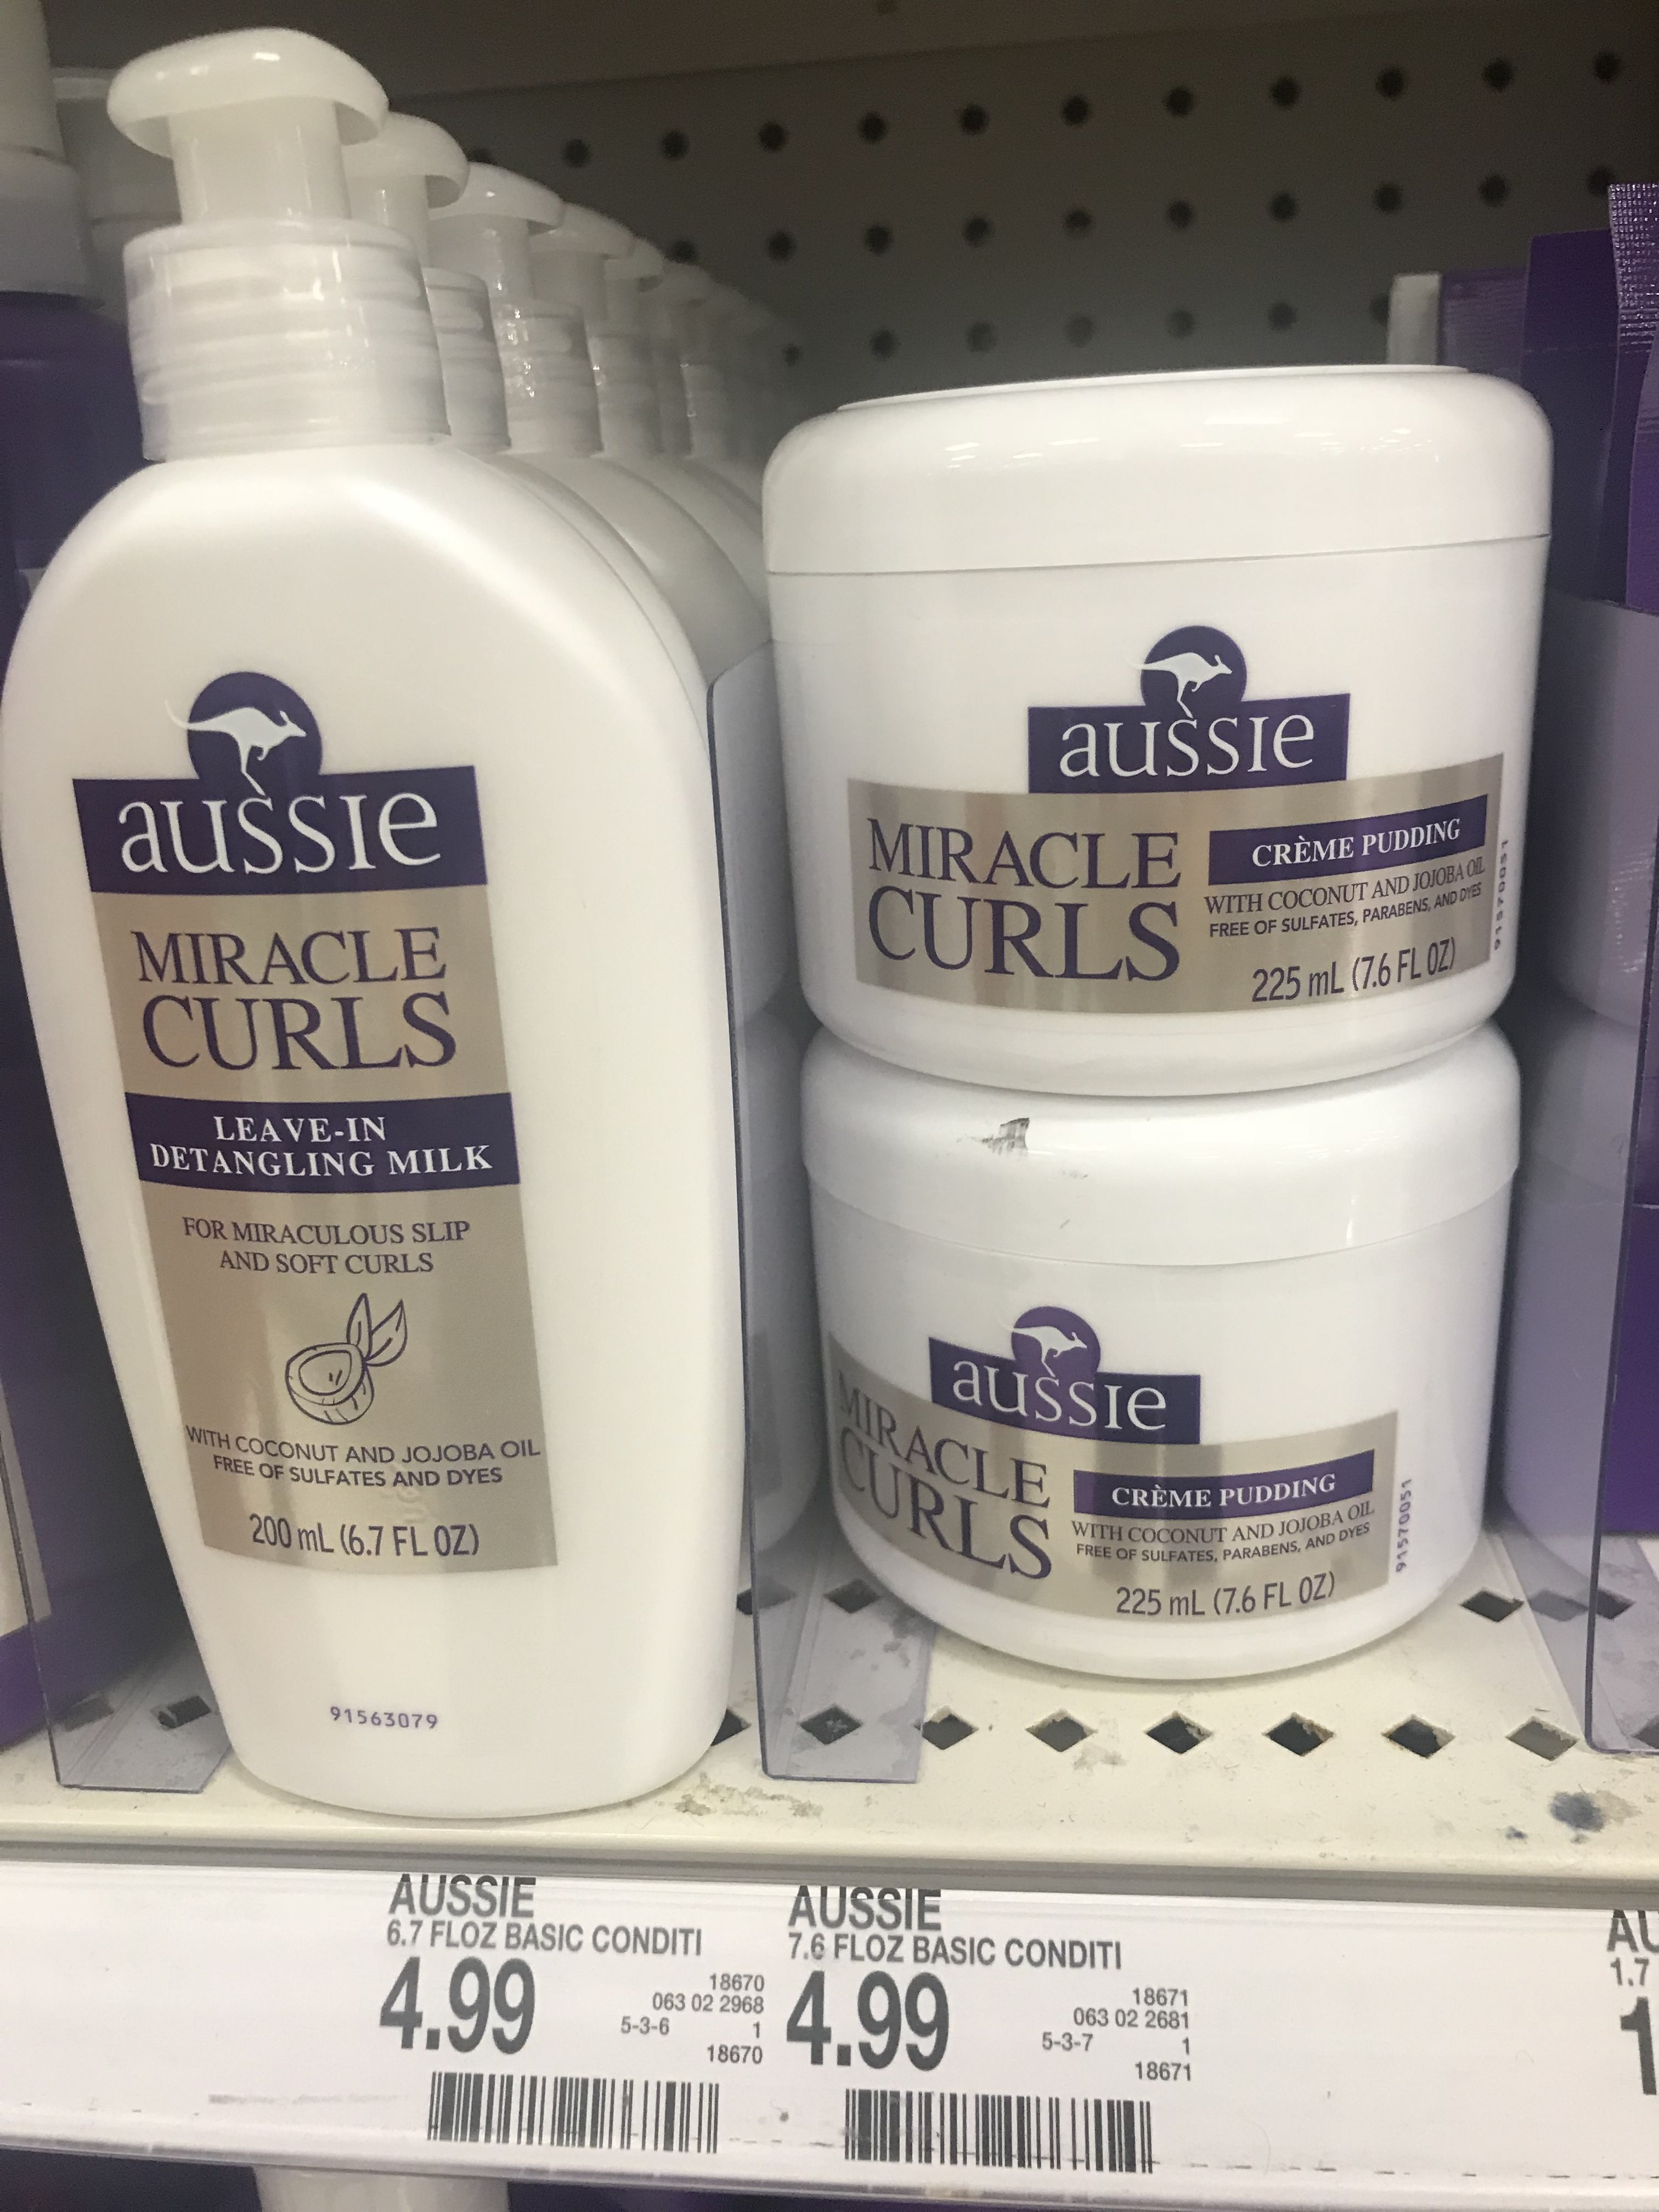 2 more products from the Aussie Miracle Curls collection